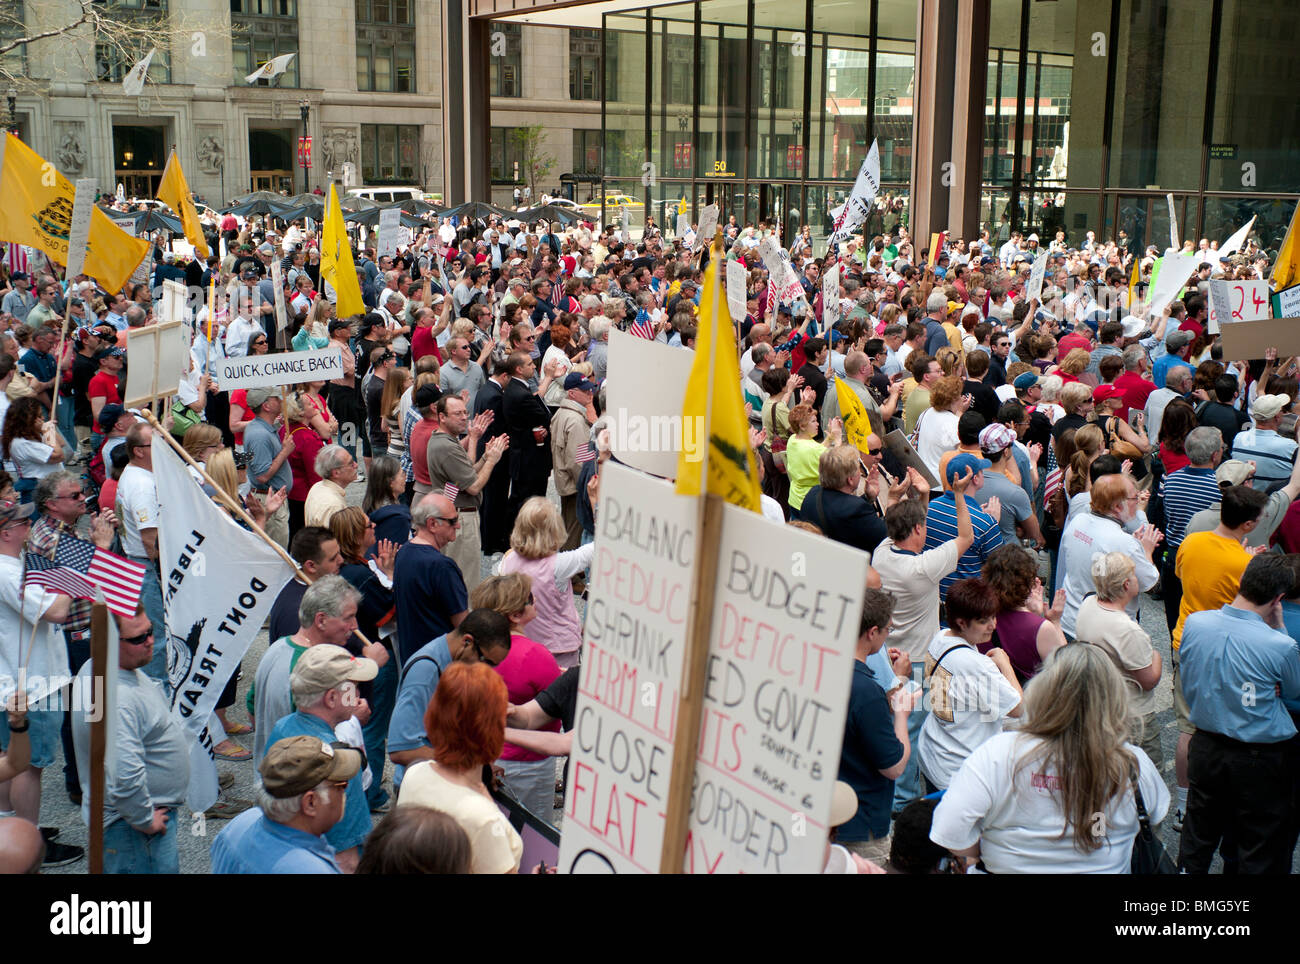 Members of the Illinois Tea Party movement rally at Chicago's Daley Plaza on Thursday, April 15, 2010. Stock Photo